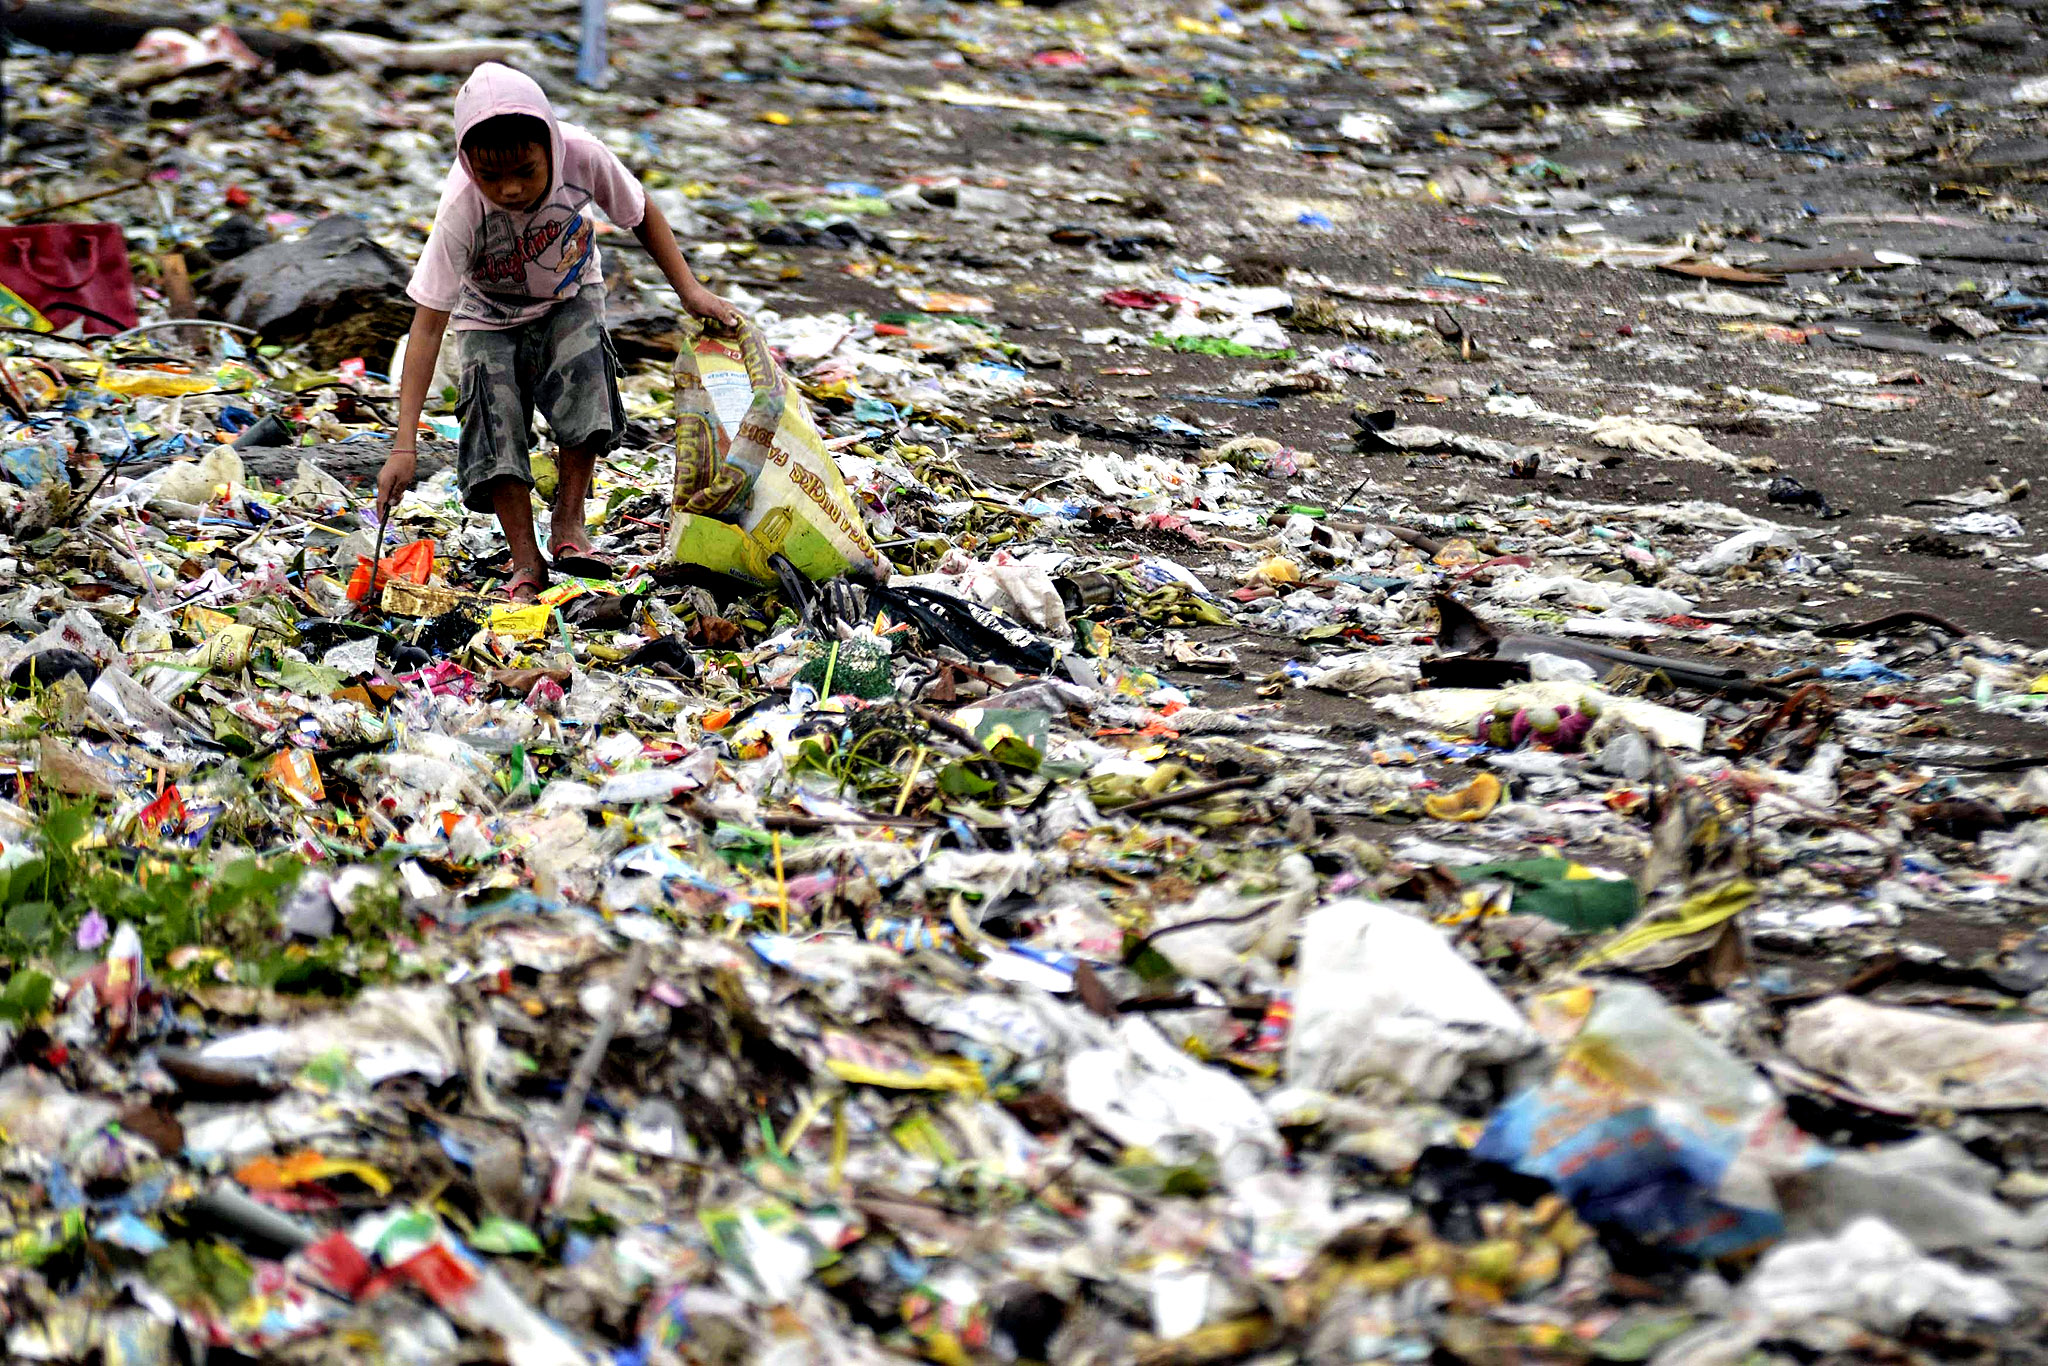 A boy looks for recyclable materials among the garbage washed ashore due to Typhoon Hagupit in Cavite, south of Manila December 9, 2014. Typhoon Hagupit weakened further on Tuesday as the storm crawled across the central Philippines, while rescue workers struggled in its aftermath to reach towns in central provinces where thousands of homes were wrecked and at least 27 people killed